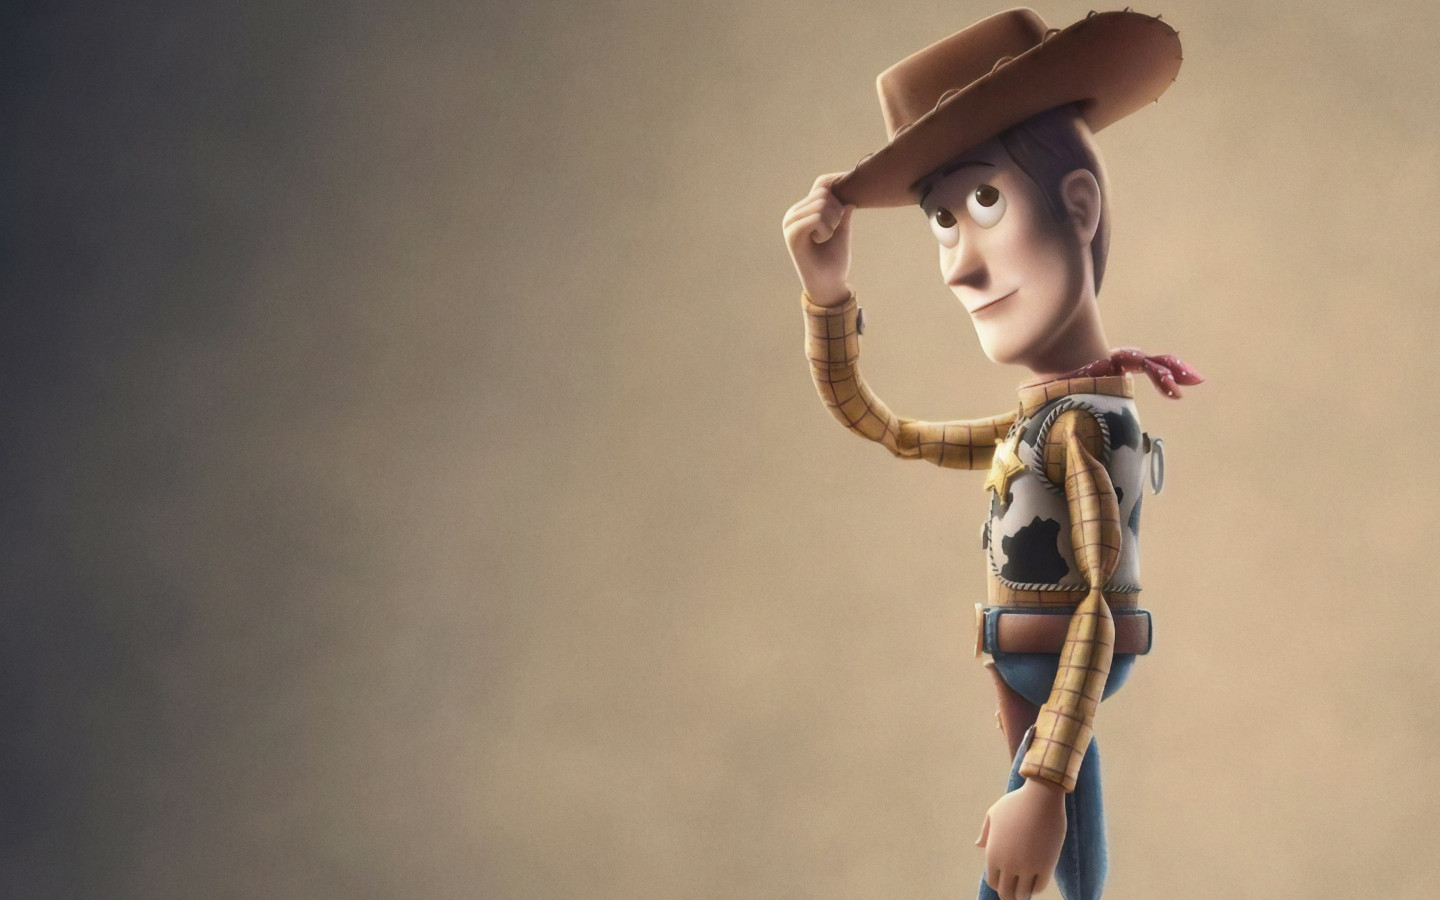 Toy Story 4 | 1440x900 wallpaper